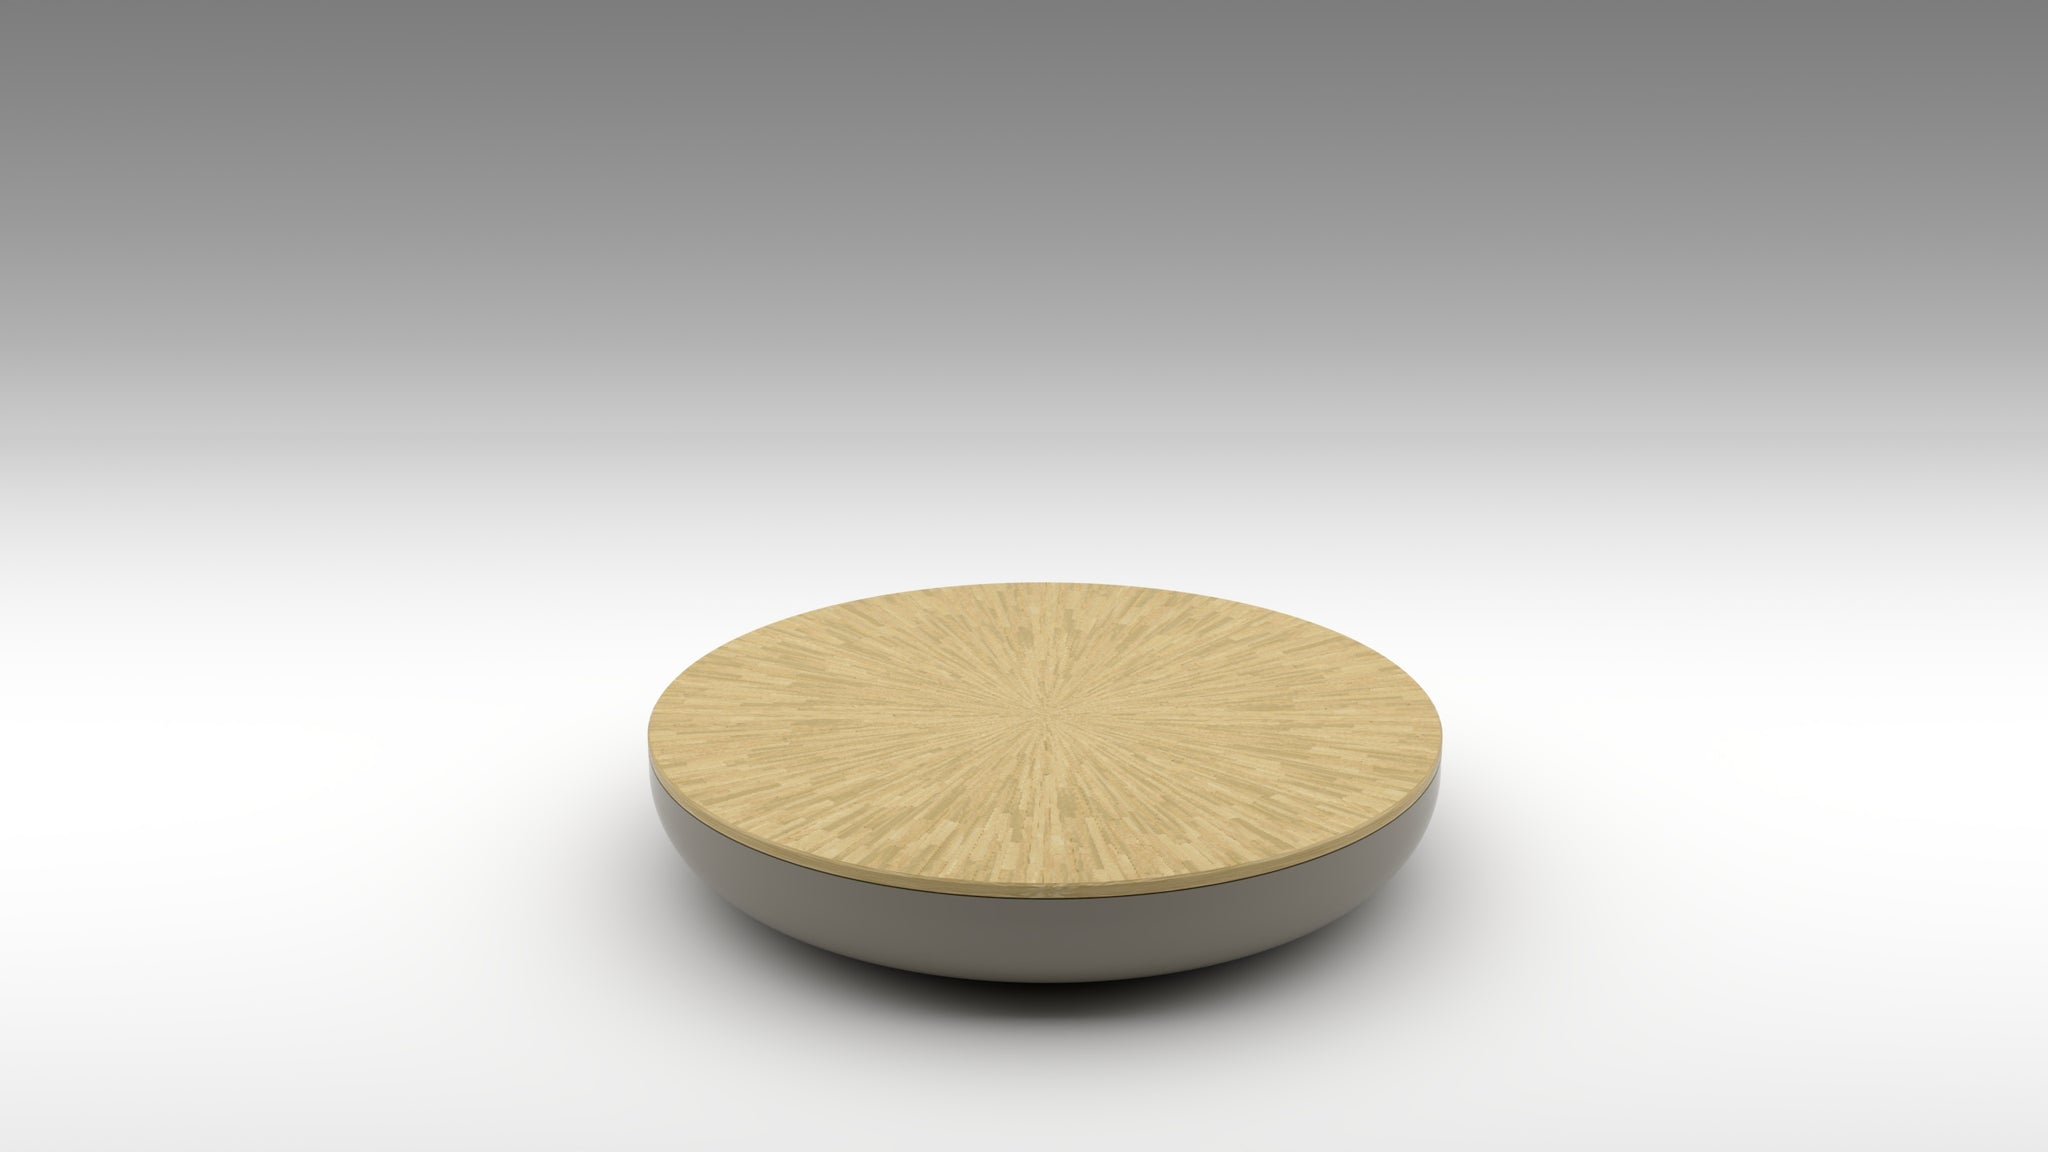 half macaron, akar macaron, lacquer coffee table, straw marquetry, beige straw marquetry, light gold straw marquetry, neutral coffee table, maple coffee table, solid maple, akar coffee table, round coffee table, nissim coffee table, low table, glossy lacquer, starburst straw